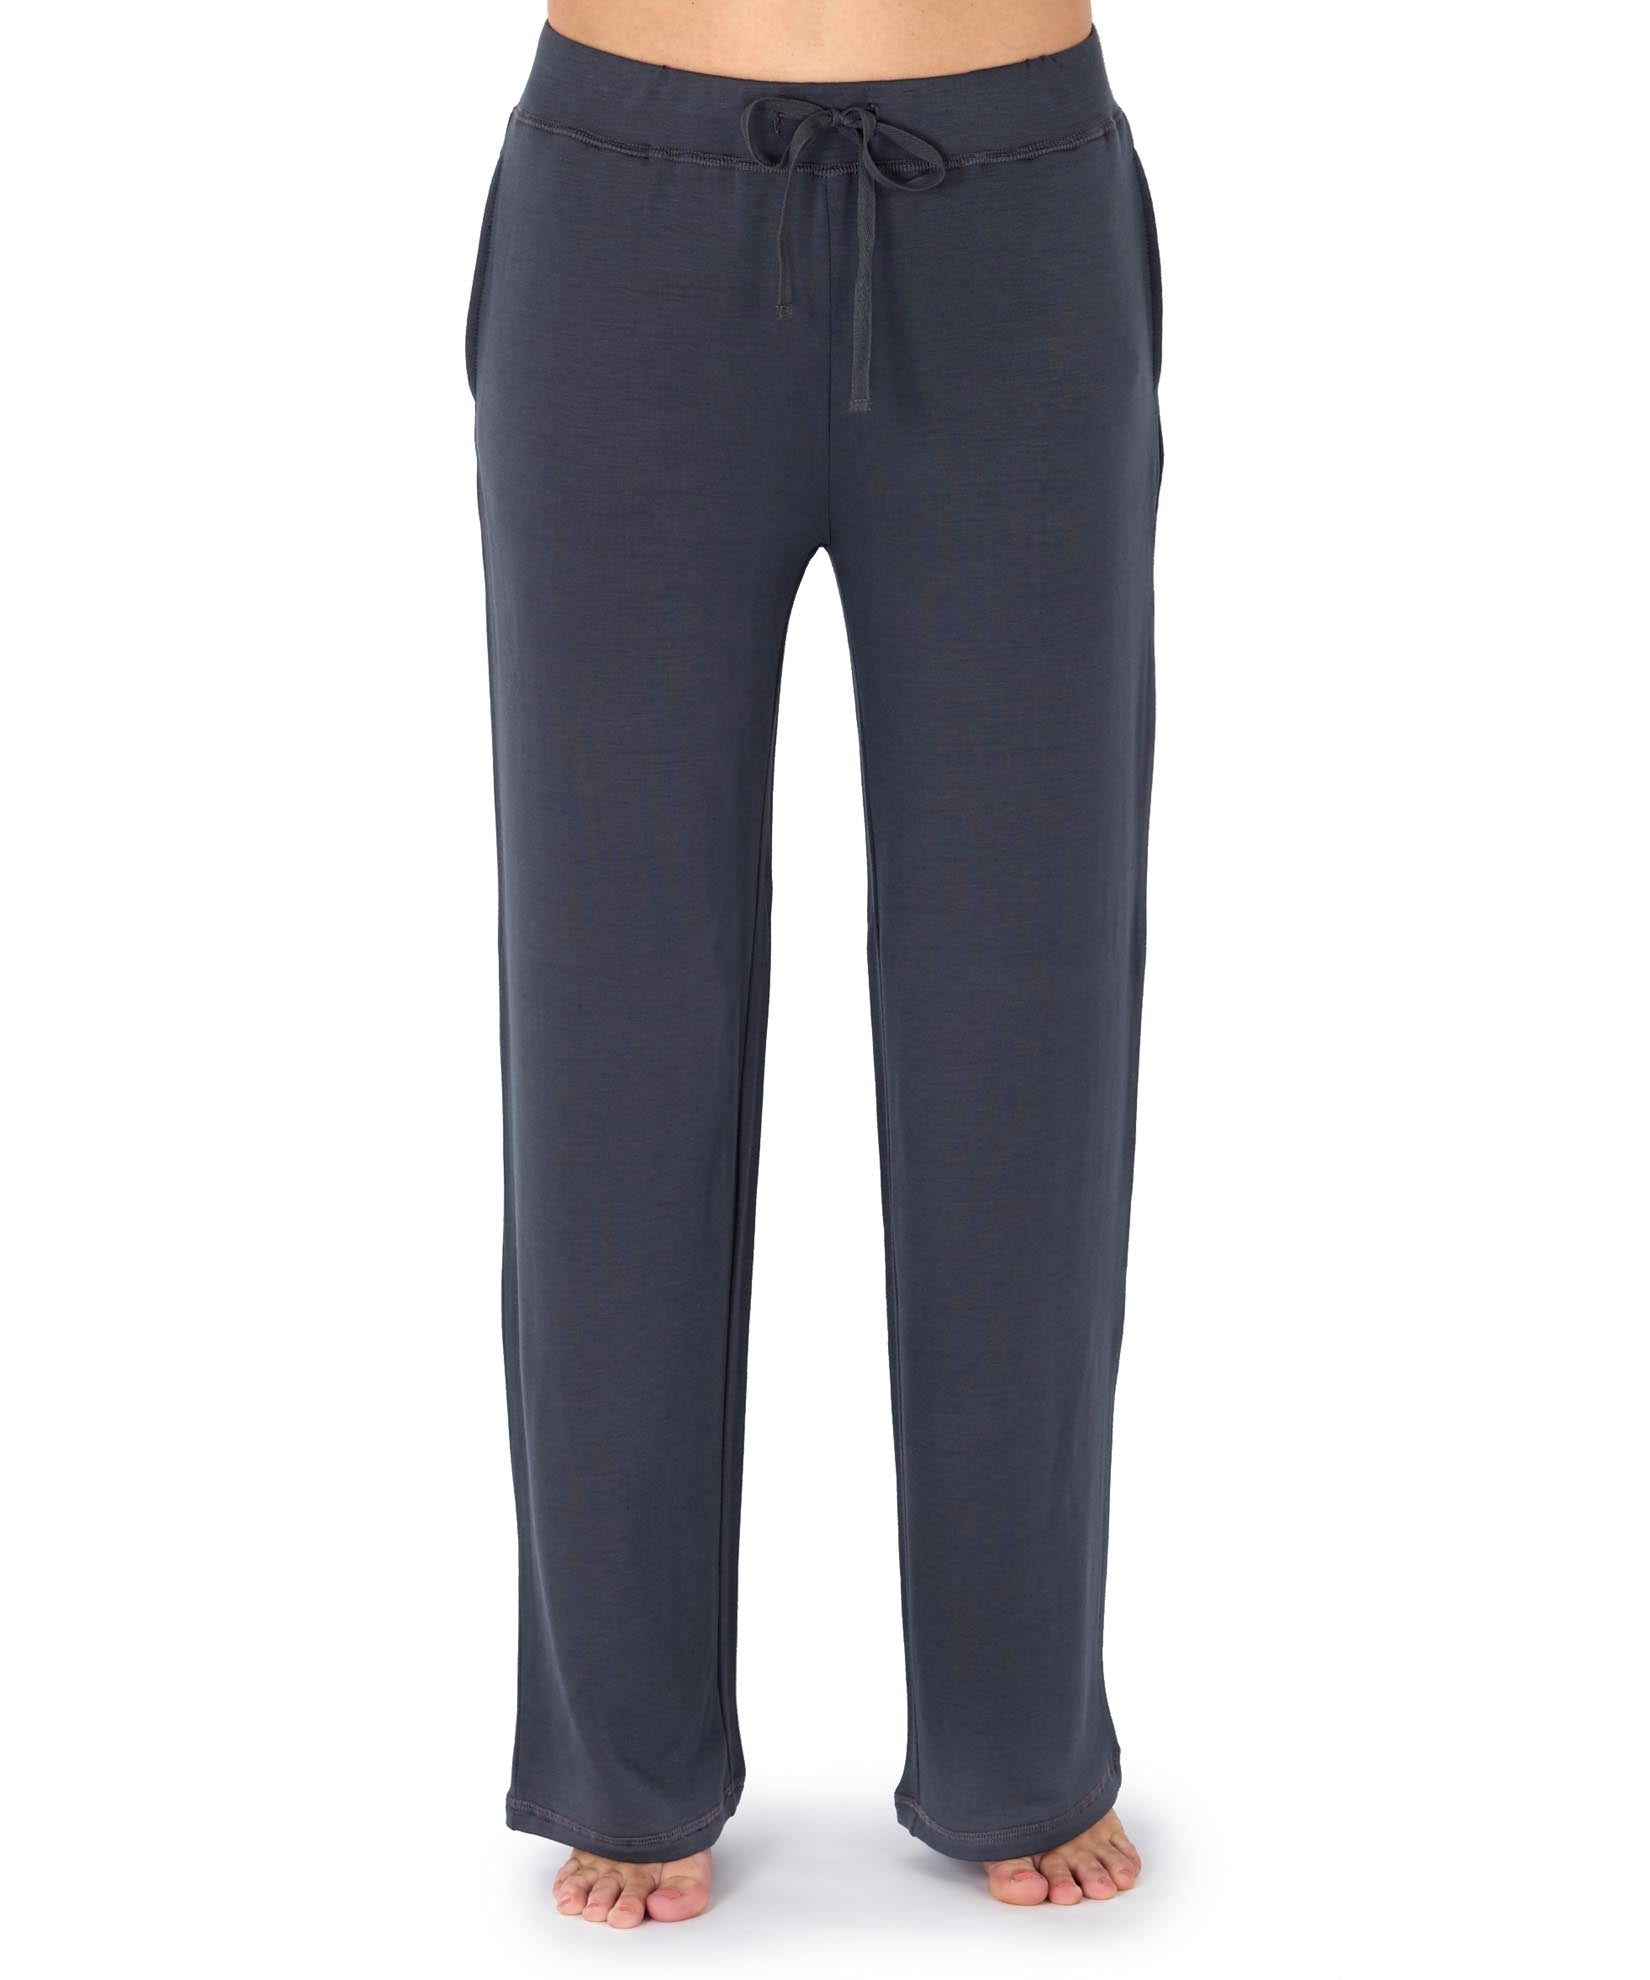 Grey - Solid Drawstring Pant